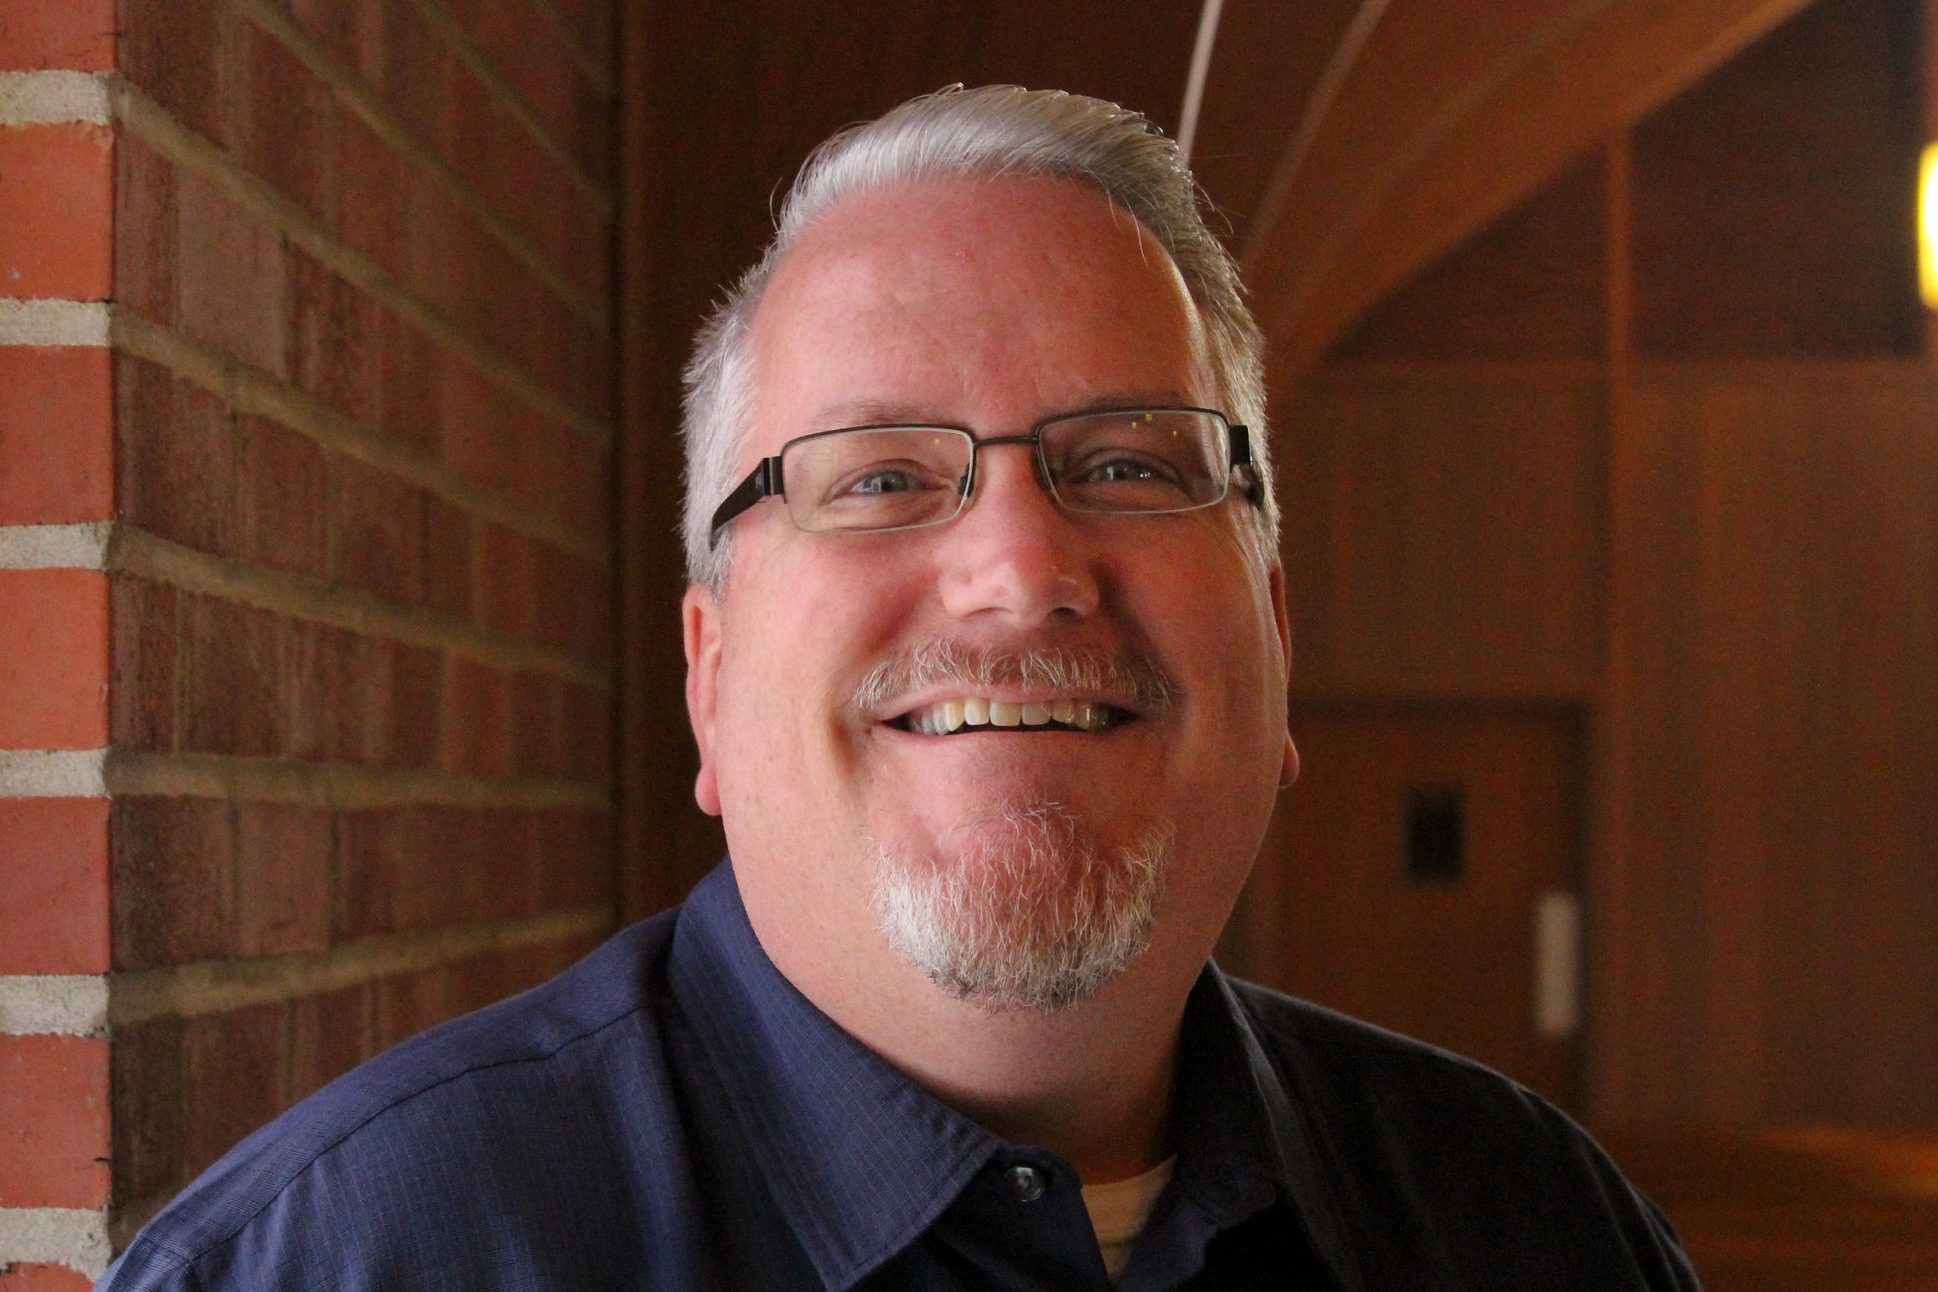 Jonathan c dow - Director of MusicJonathan has served as the Director of Music since March of 2011. In addition to his part-time ministry at Matthews, he travels as a guest worship leader and retreat speaker. Read more...